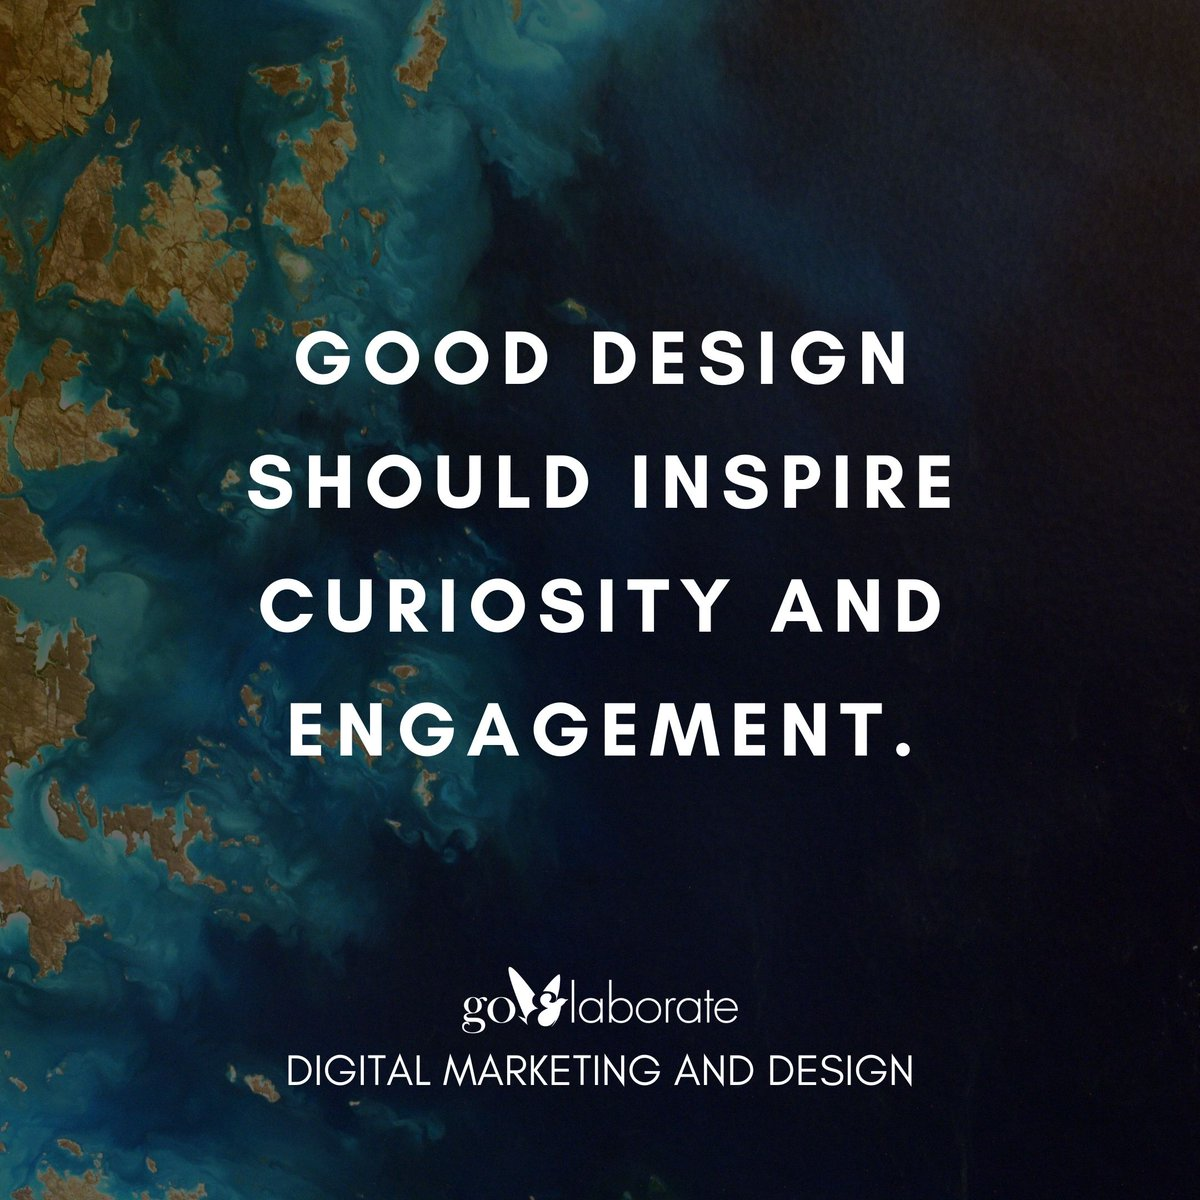 Good design should inspire curiosity and engagement.  #fridaymorning #FridayThoughts #FridayFeeling #design  #goElaborate